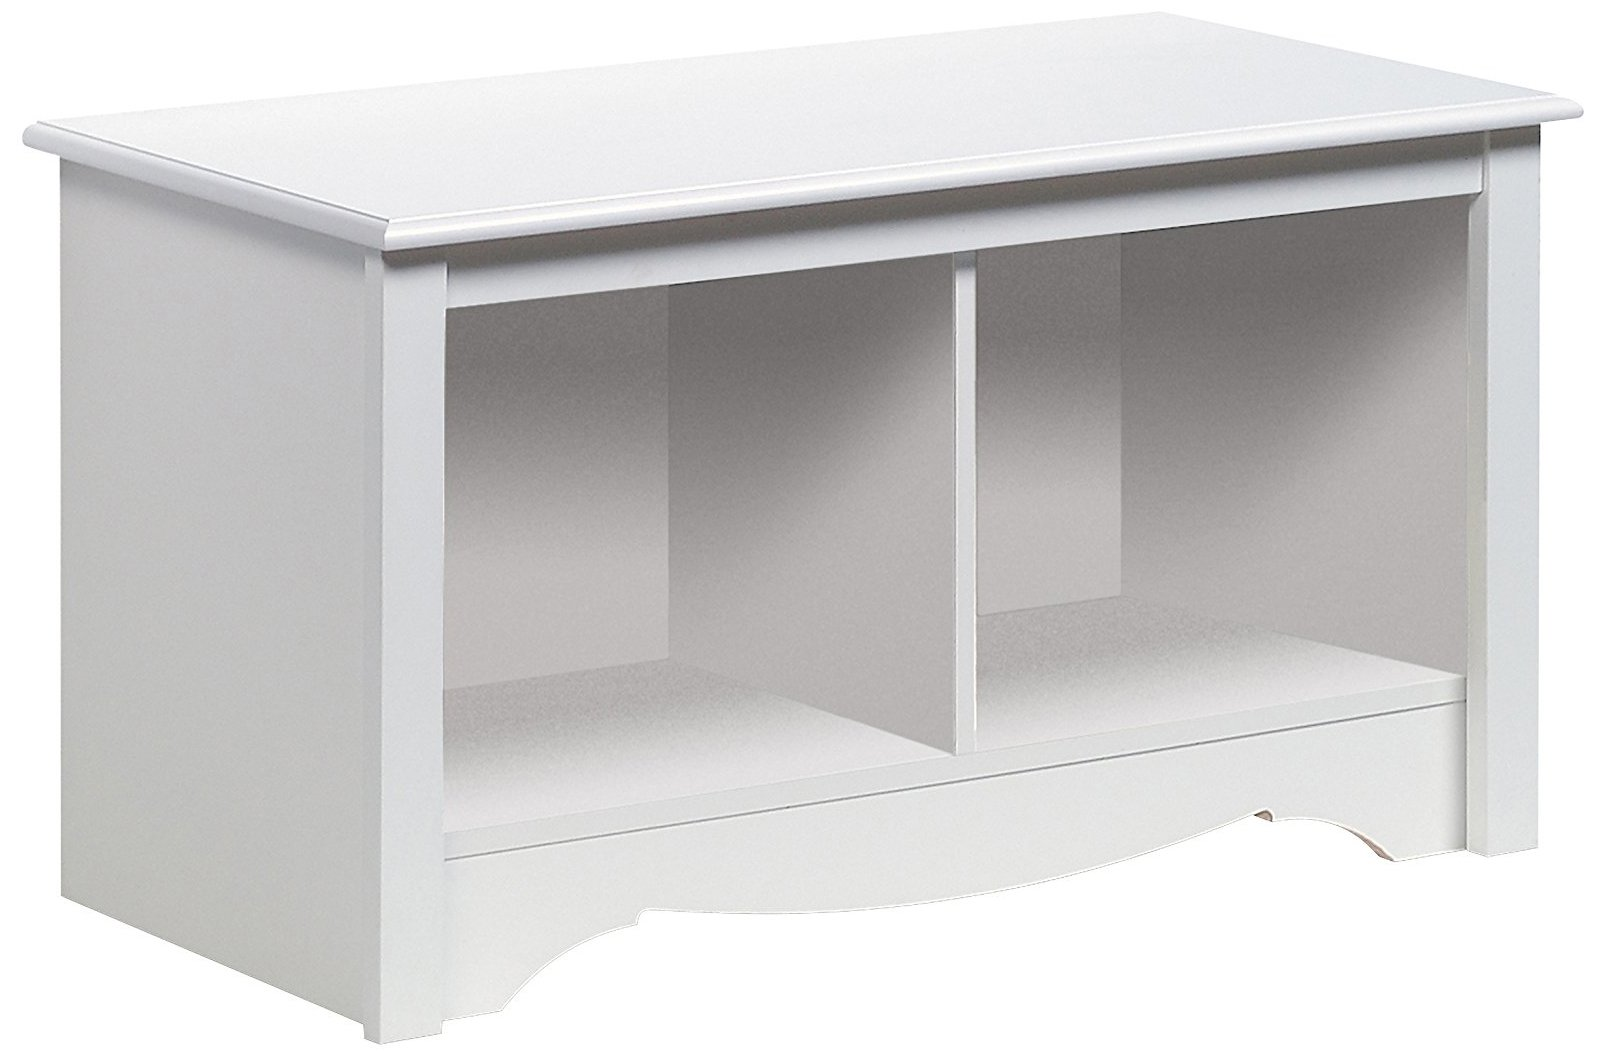 Prepac Monterey White Twin Cubbie Bench (Small) by Prepac